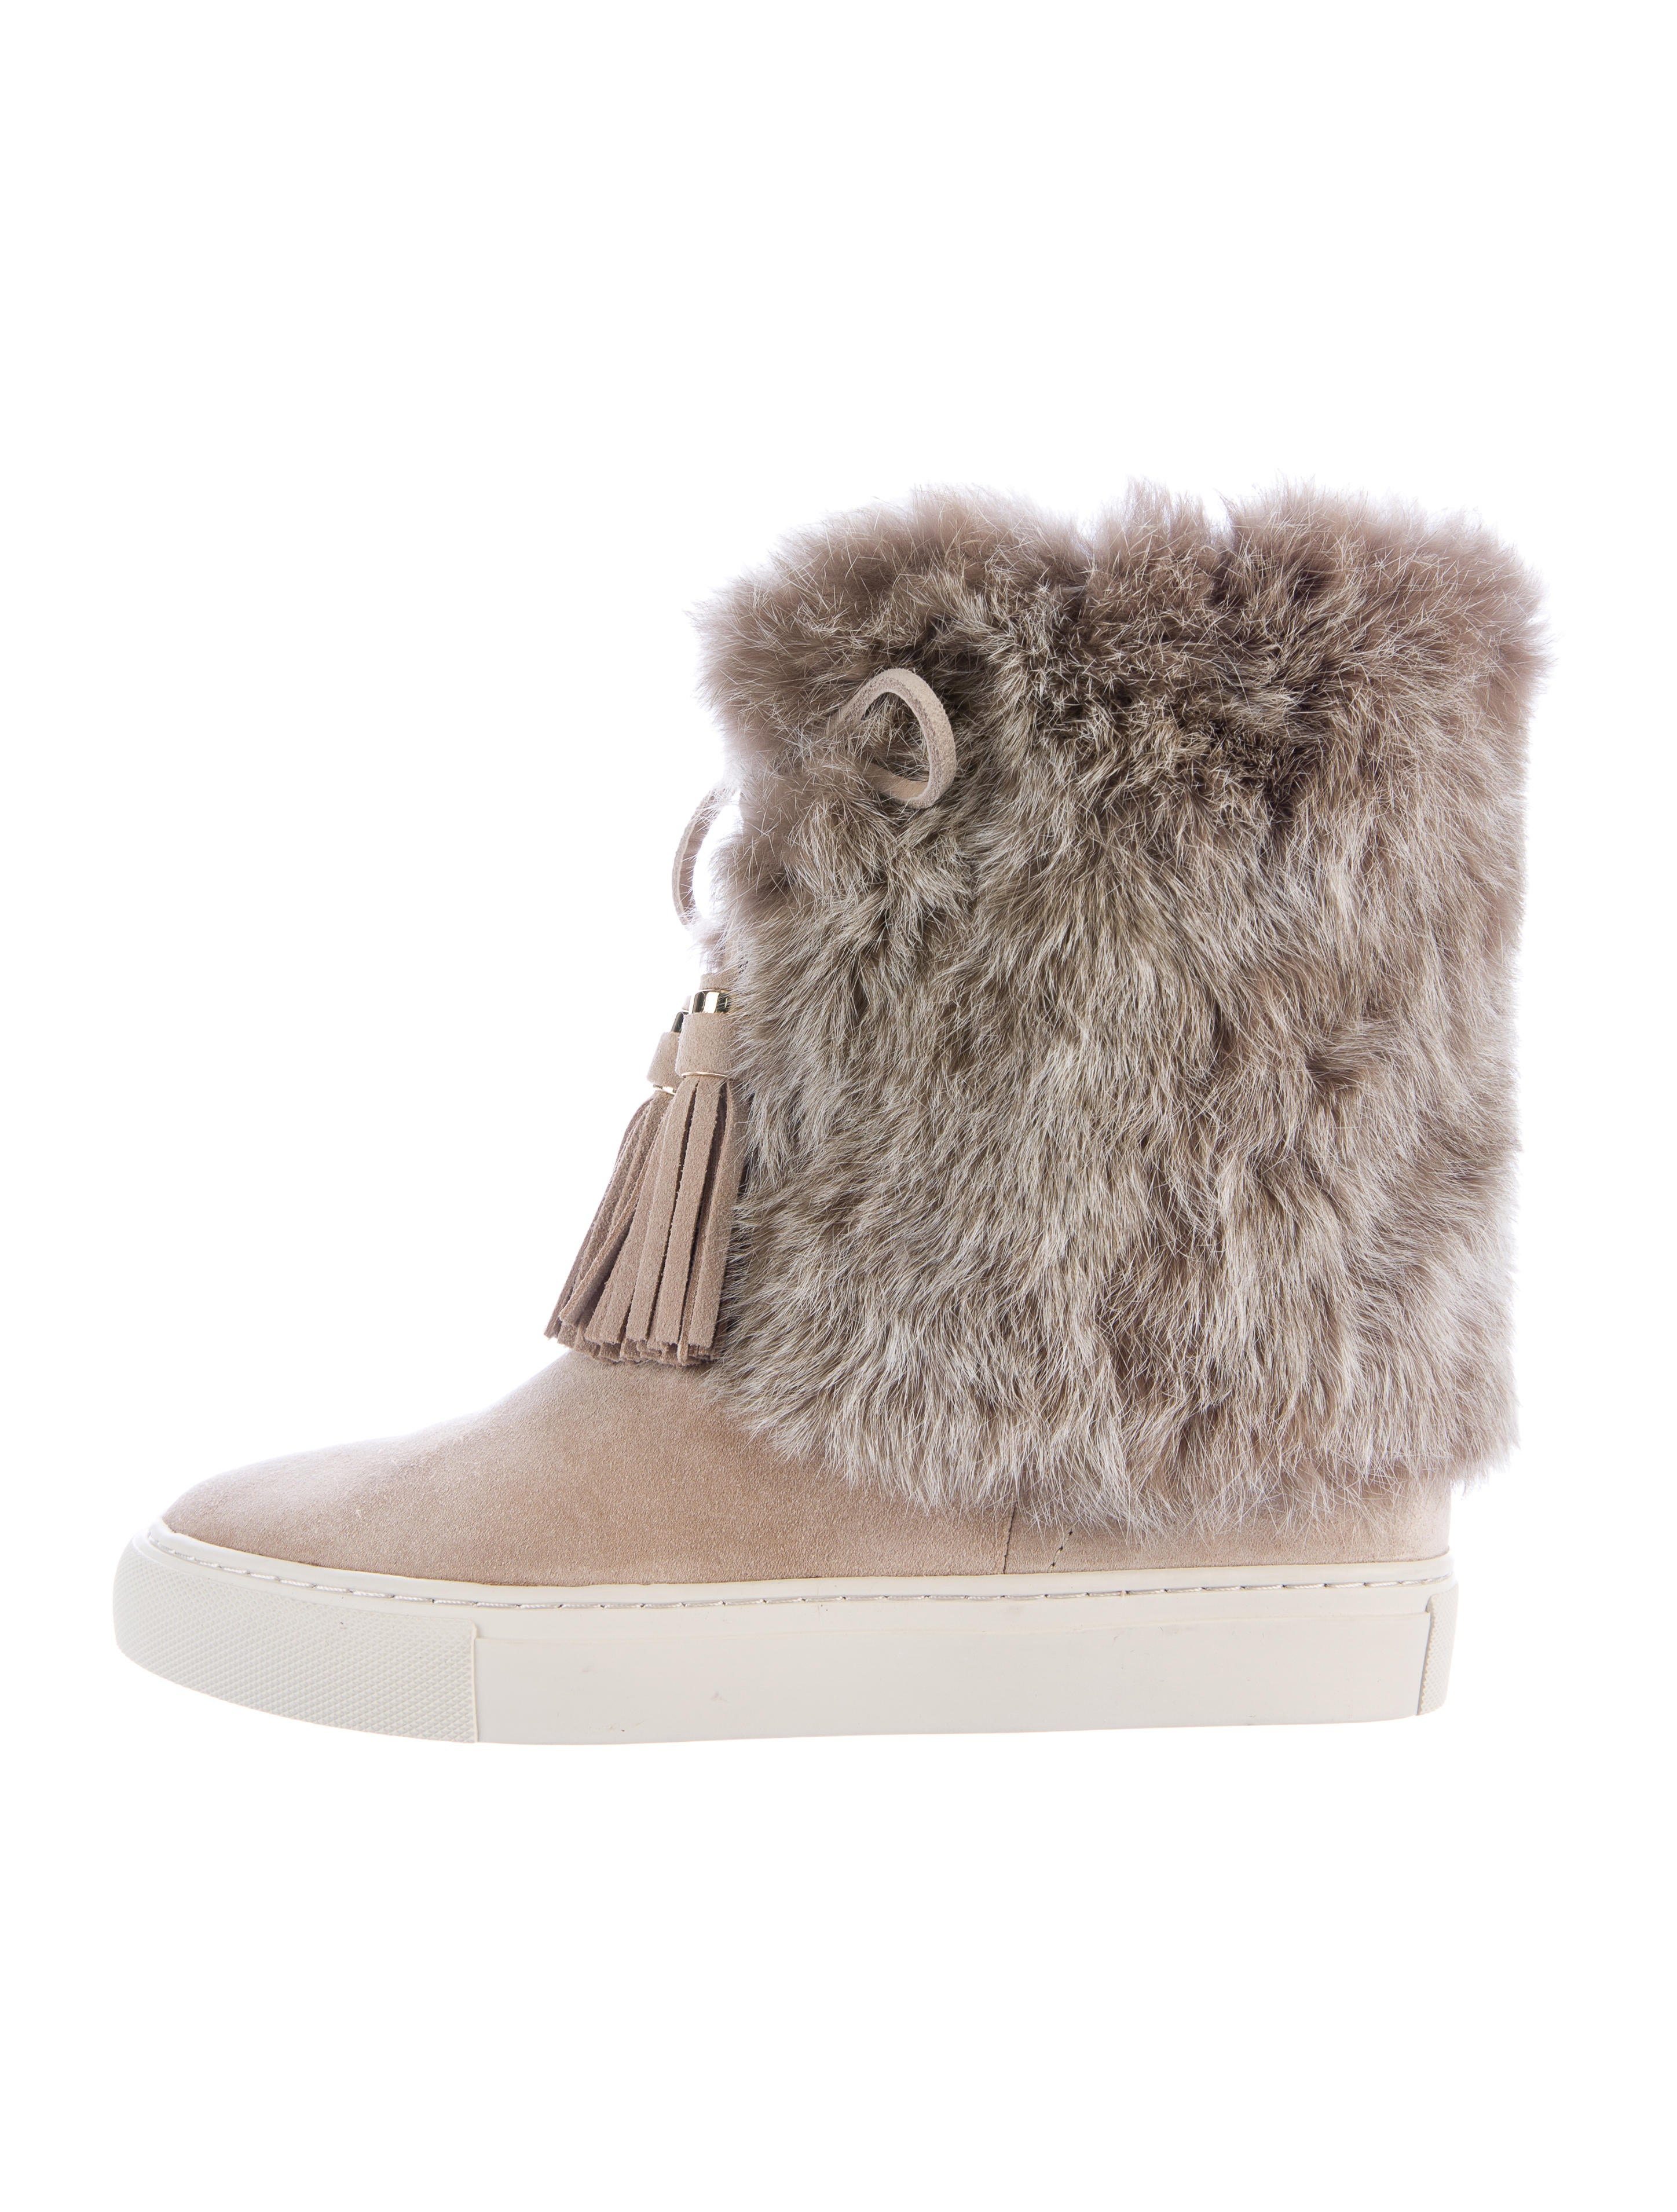 bf67d30d6eda Tory Burch Anjelica Fur-Trimmed Boots - Shoes - WTO89309